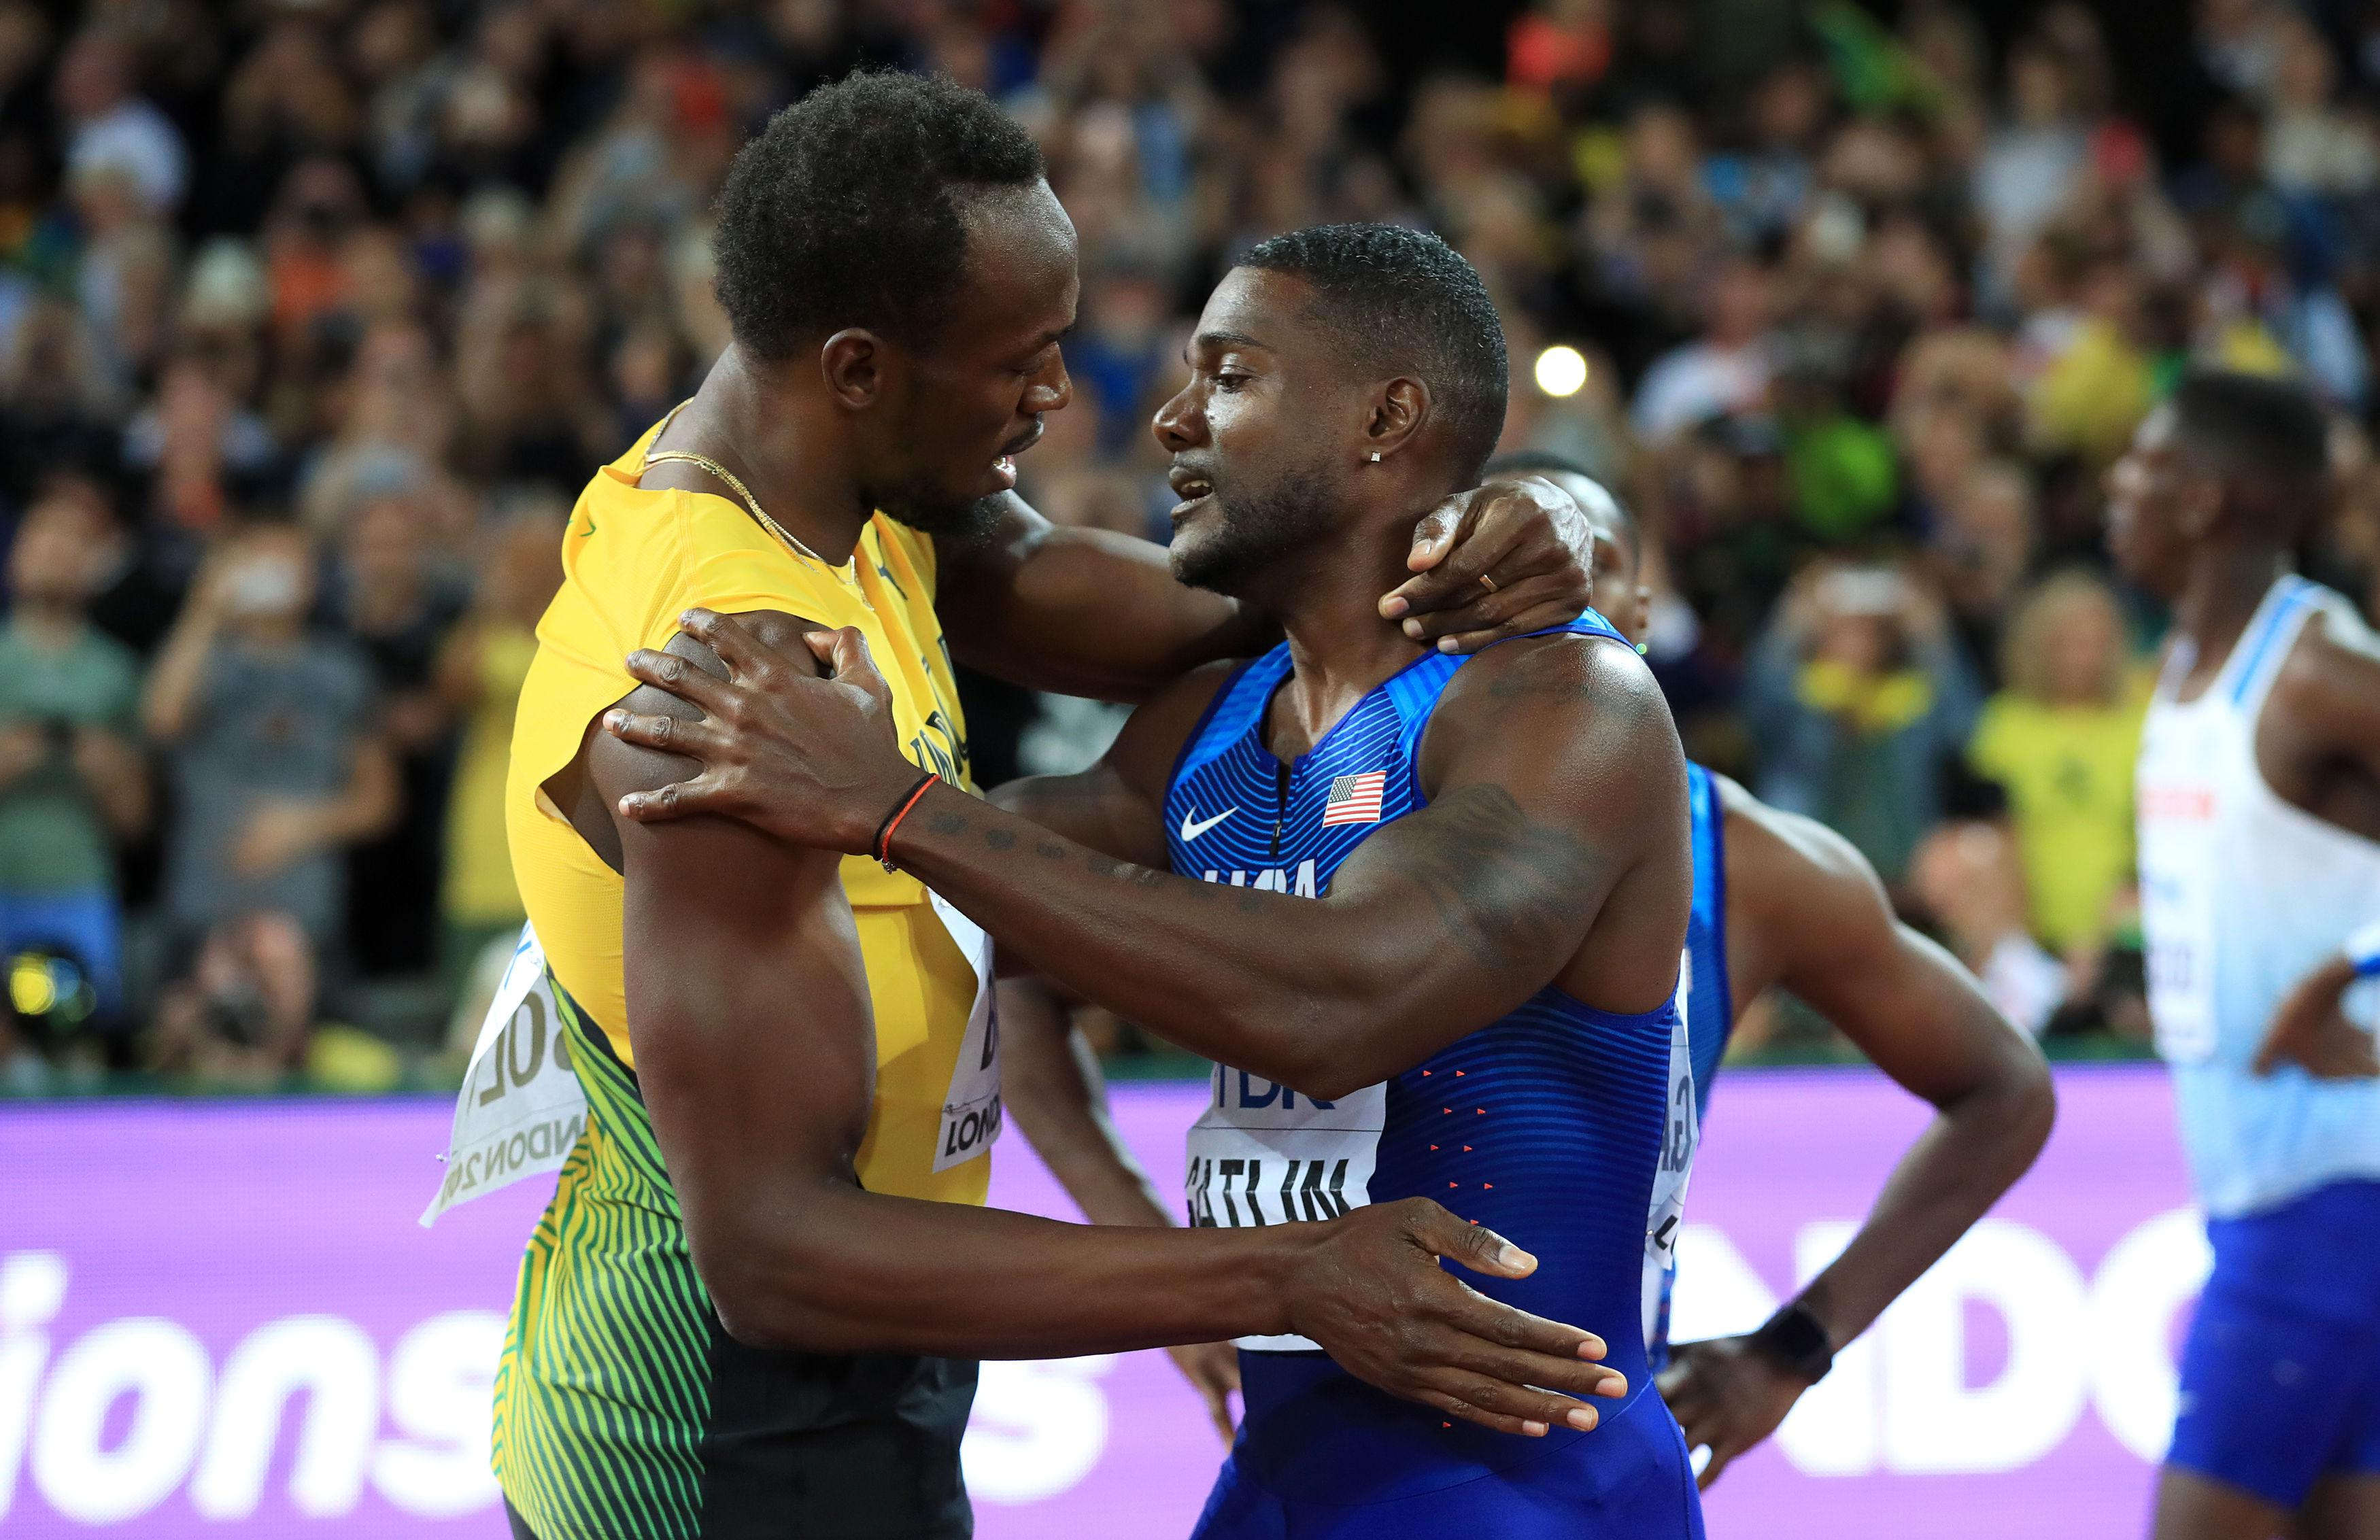 Gatlin won the 100m final as Bolt could only secure a bronze